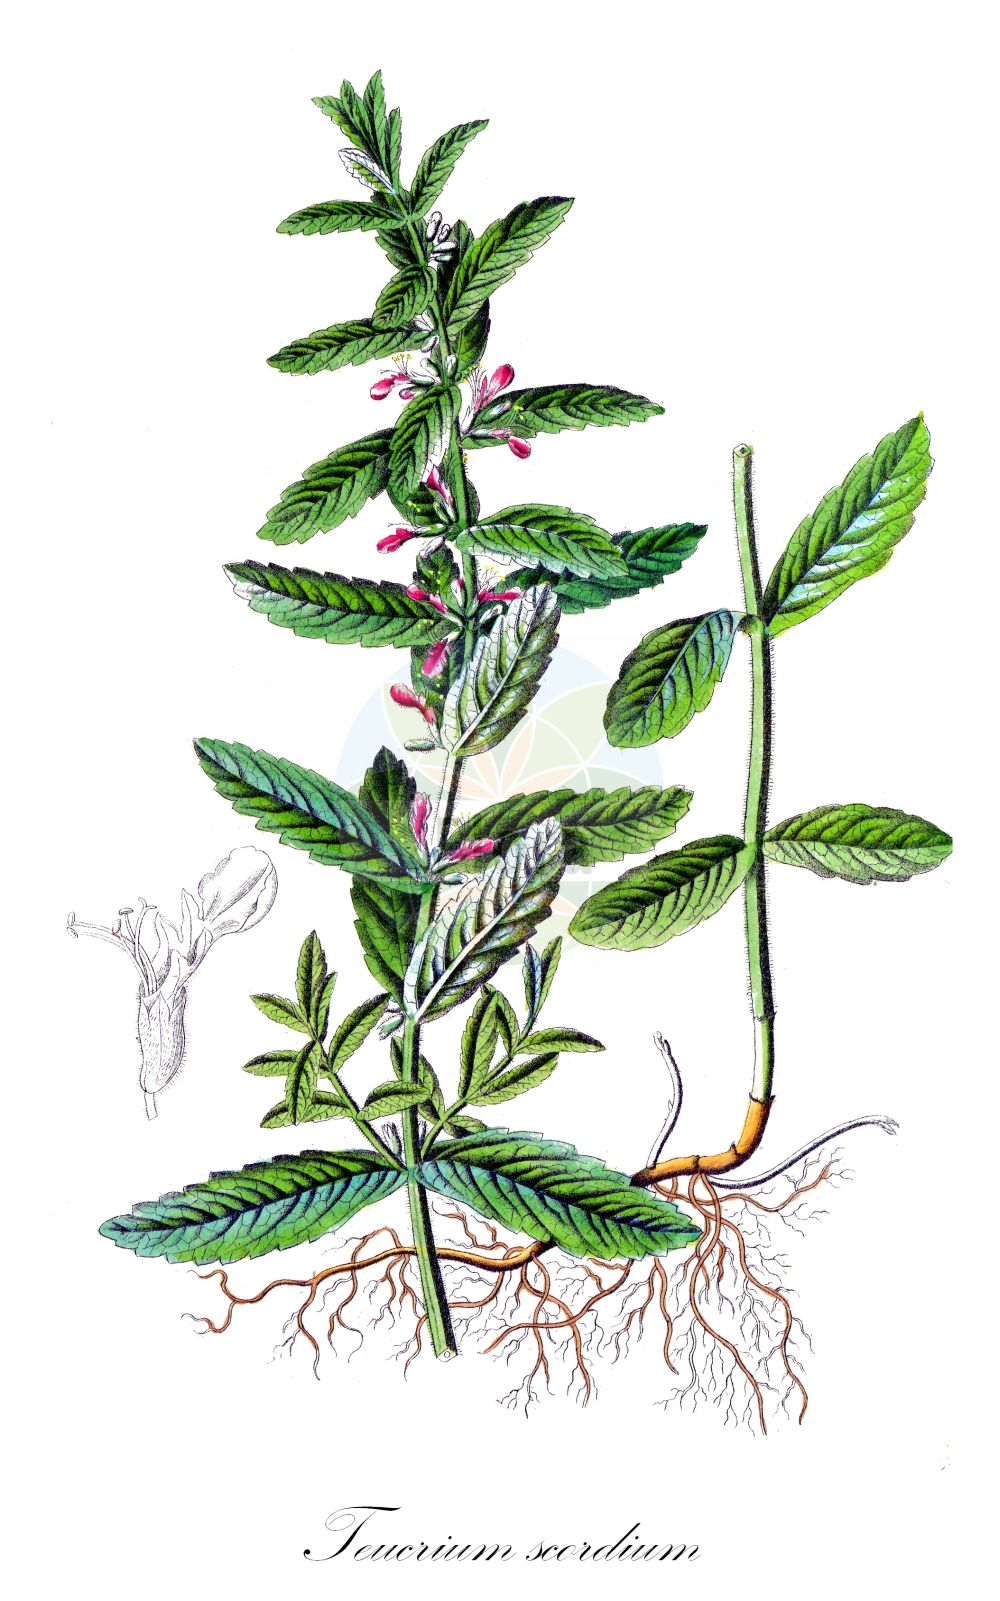 Historische Abbildung von Teucrium scordium (Lauch-Gamander - Water Germander). Das Bild zeigt Blatt, Bluete, Frucht und Same. ---- Historical Drawing of Teucrium scordium (Lauch-Gamander - Water Germander).The image is showing leaf, flower, fruit and seed.(Teucrium scordium,Lauch-Gamander,Water Germander,Chamaedrys scordium,,Teucrium,Gamander,Germander,Lamiaceae,Lippenbluetengewaechse;Lippenbluetler,Nettle family,Blatt,Bluete,Frucht,Same,leaf,flower,fruit,seed,Dietrich (1833-1844))